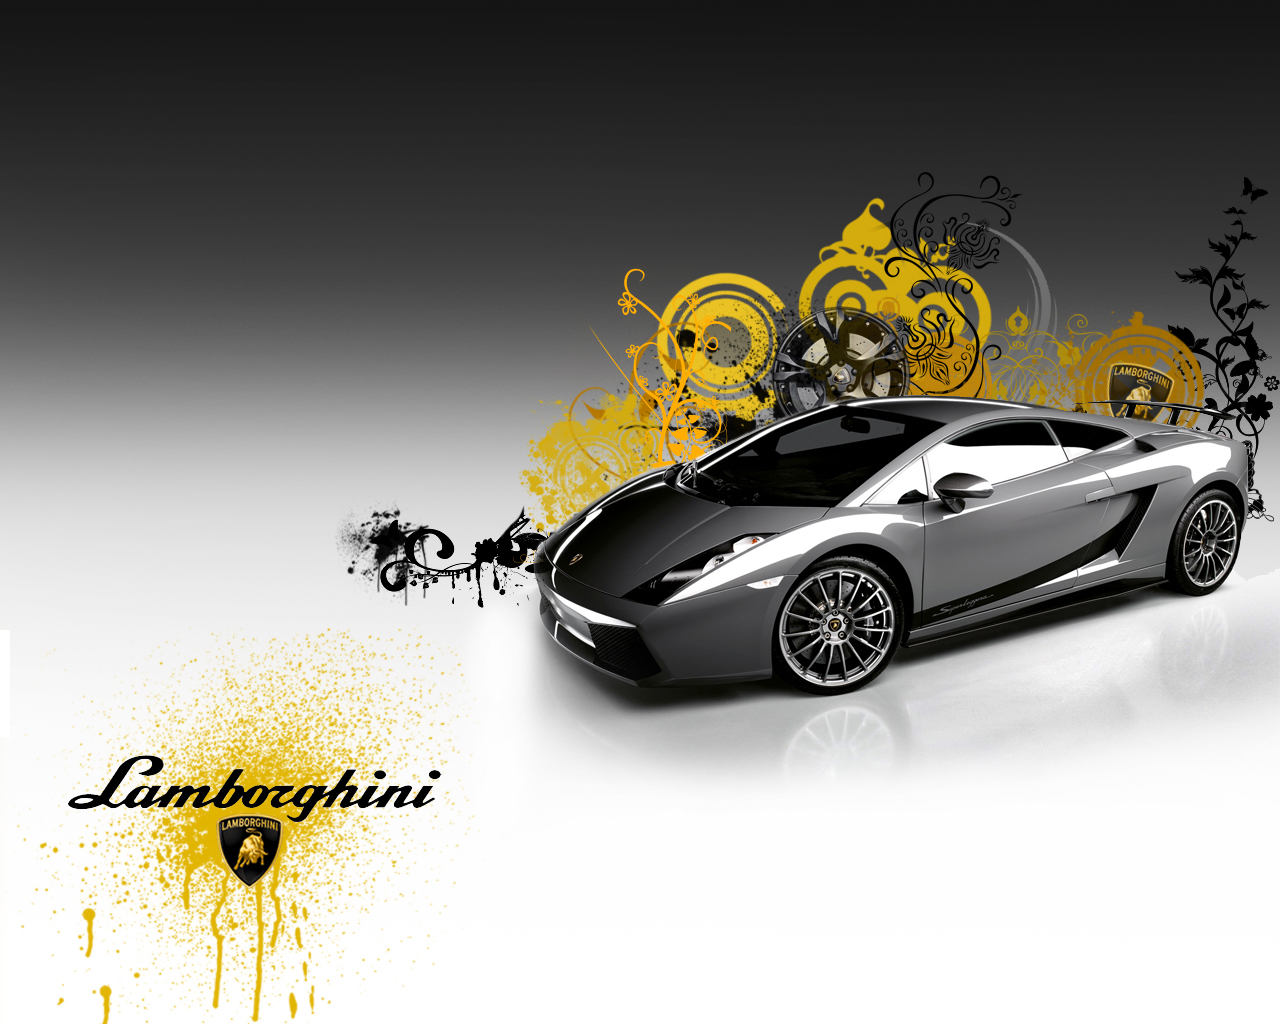 hd lamborghini gallardo wallpaper hd lamborghini gallardo wallpaper hd 1280x1024